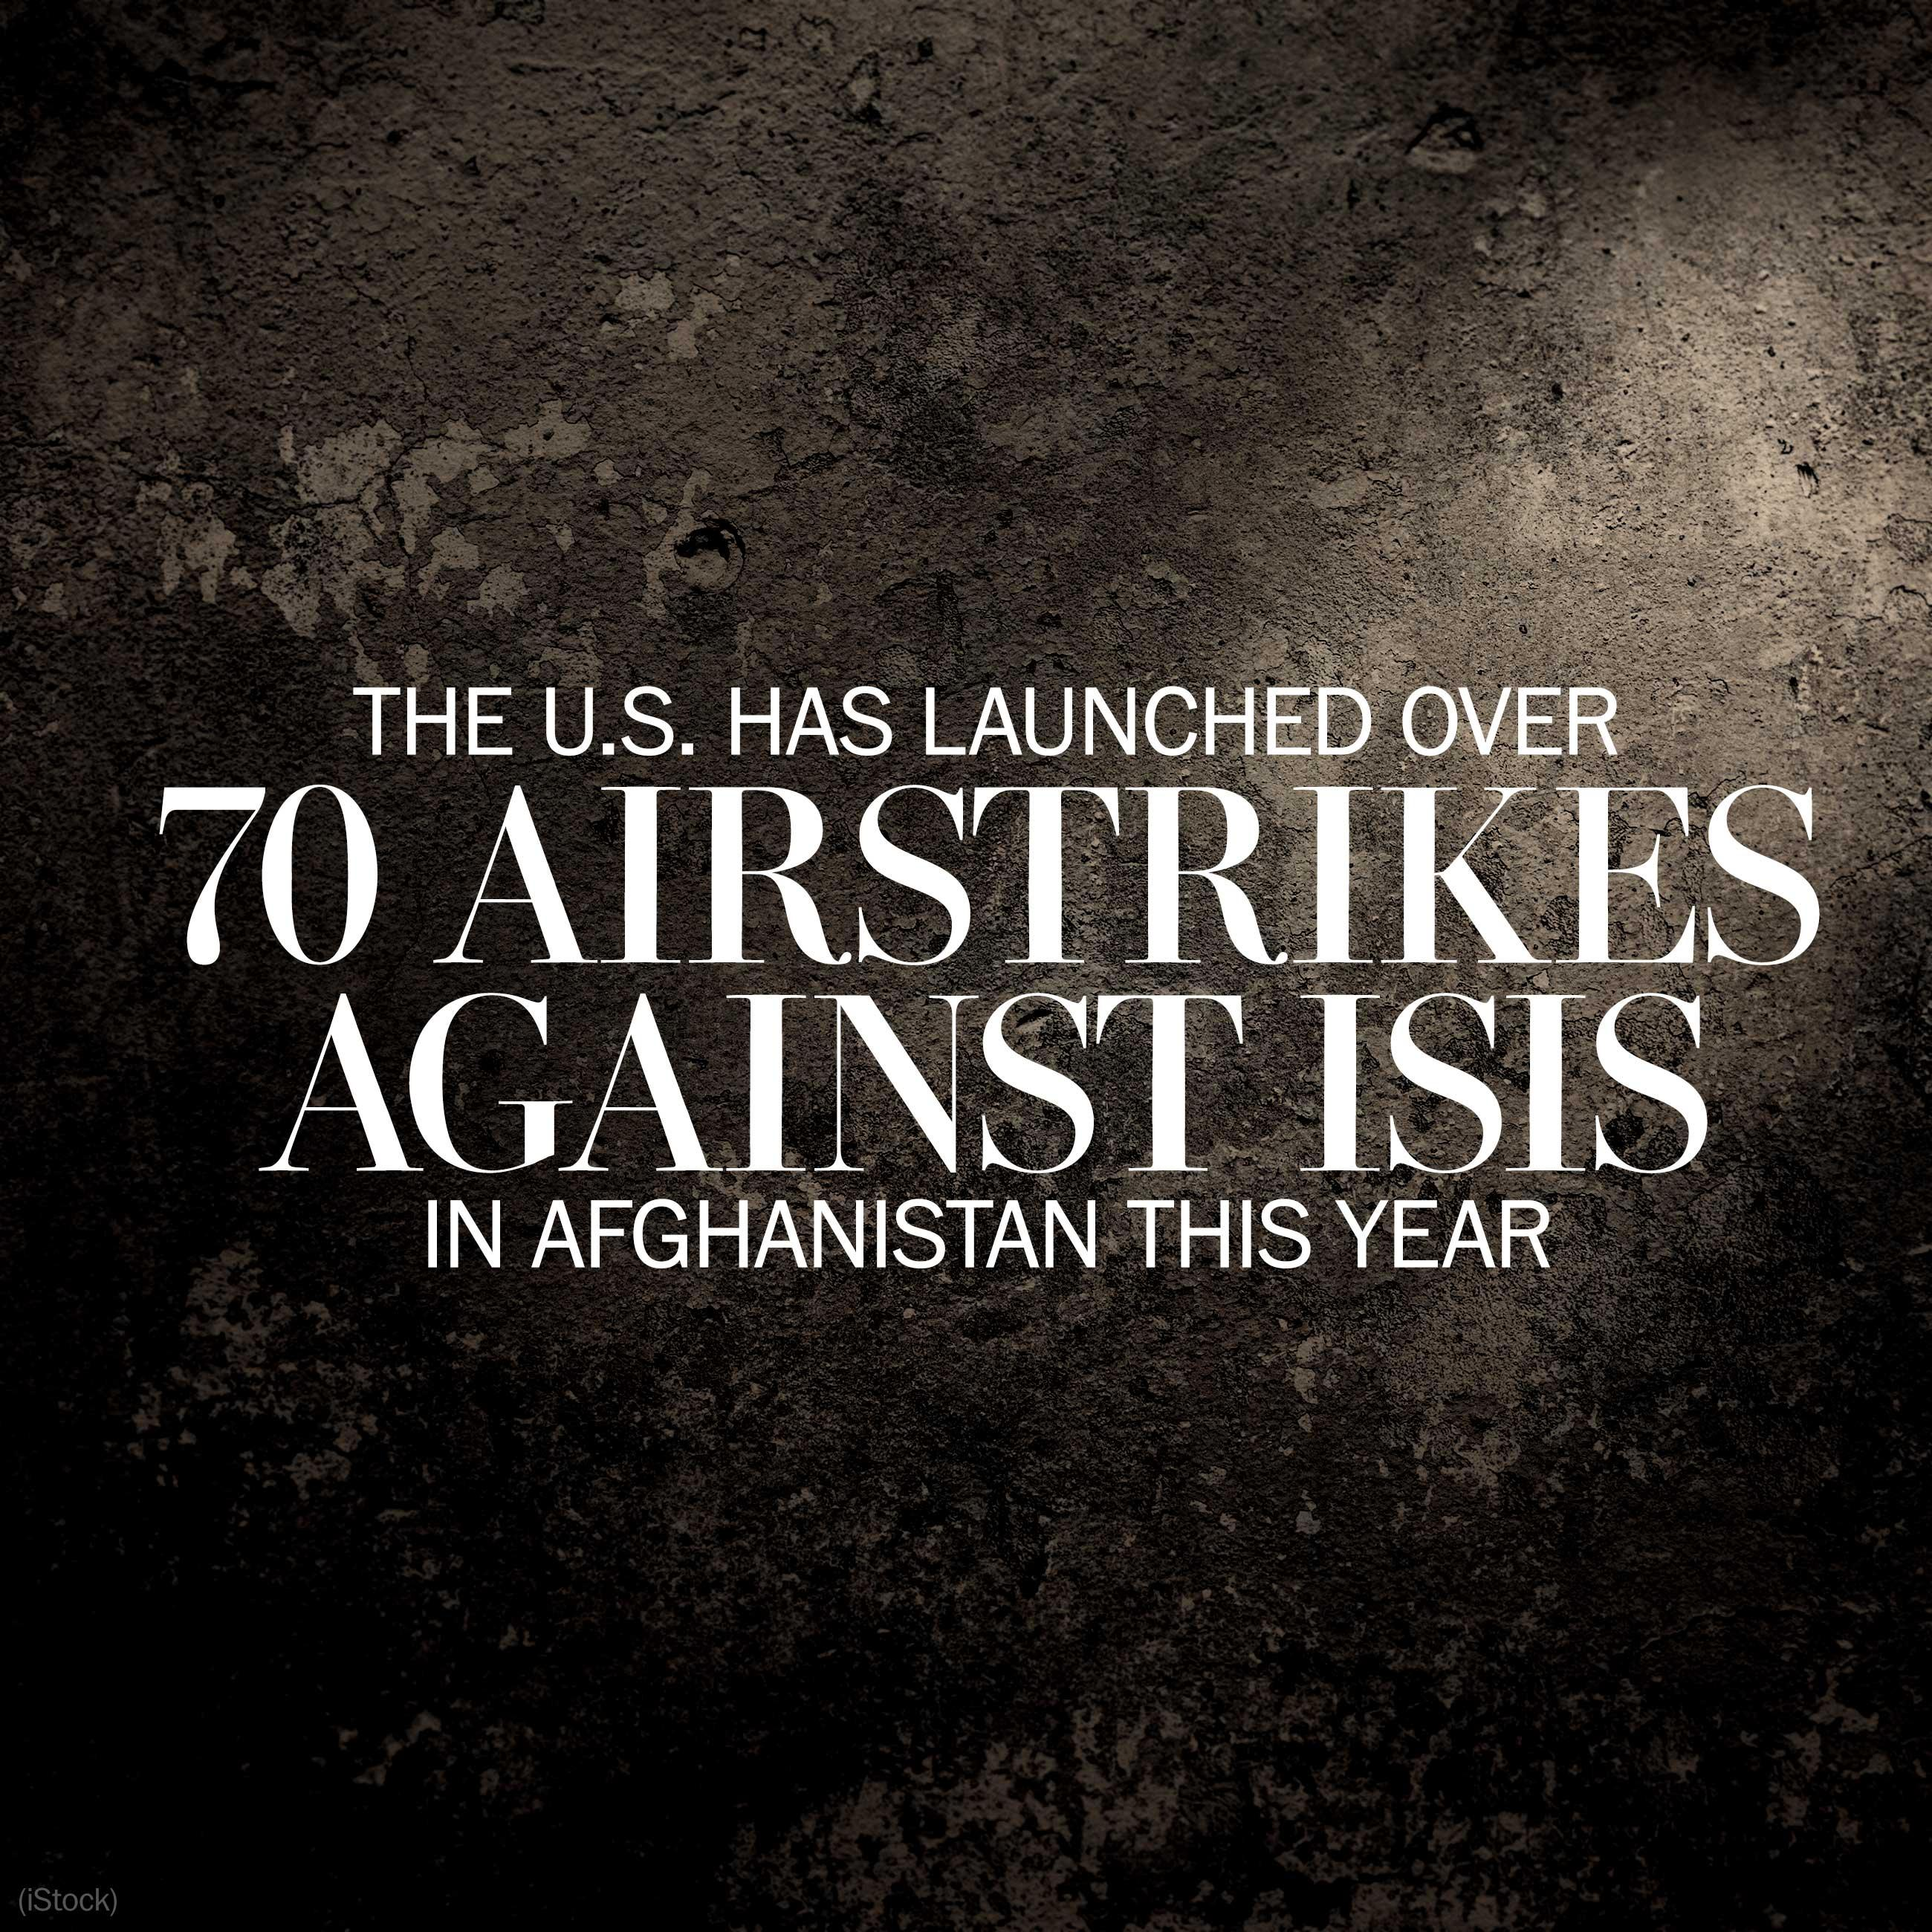 The U.S. has launched more than 70 airstrikes this year against ISIS in Afghanistan